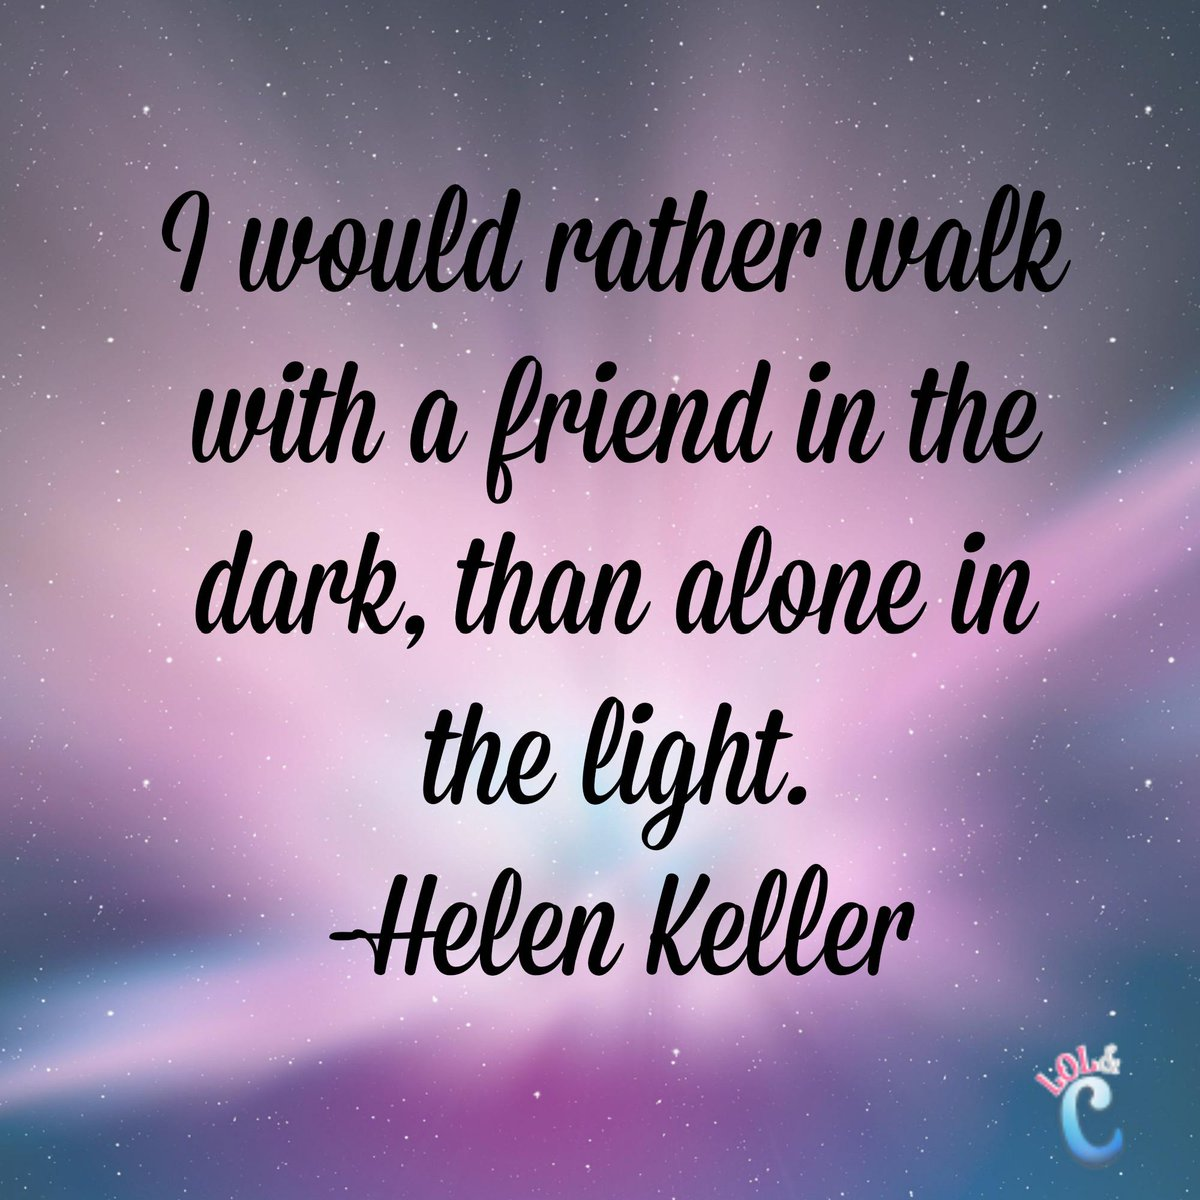 I would rather walk with a friend in the dark, than alone in the light.―Helen Keller #quotes http://t.co/0gyvcshN3a http://t.co/5bzkzTJMde